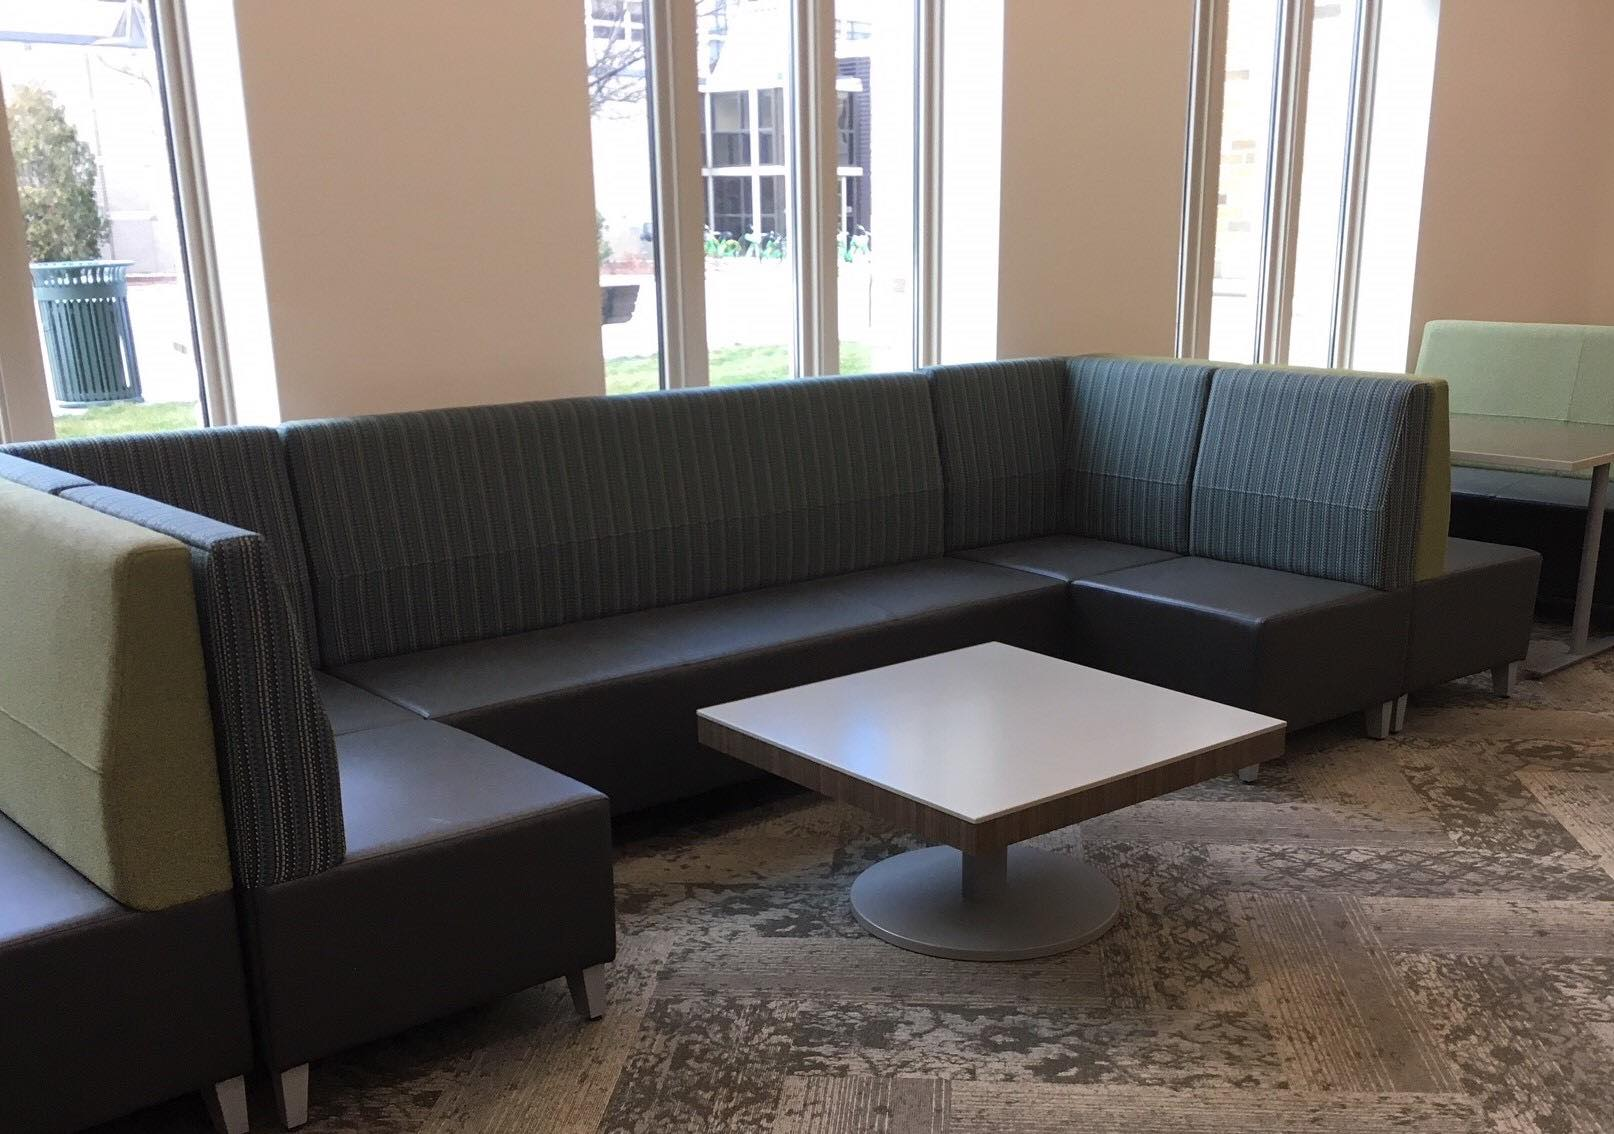 Classroom with conference table